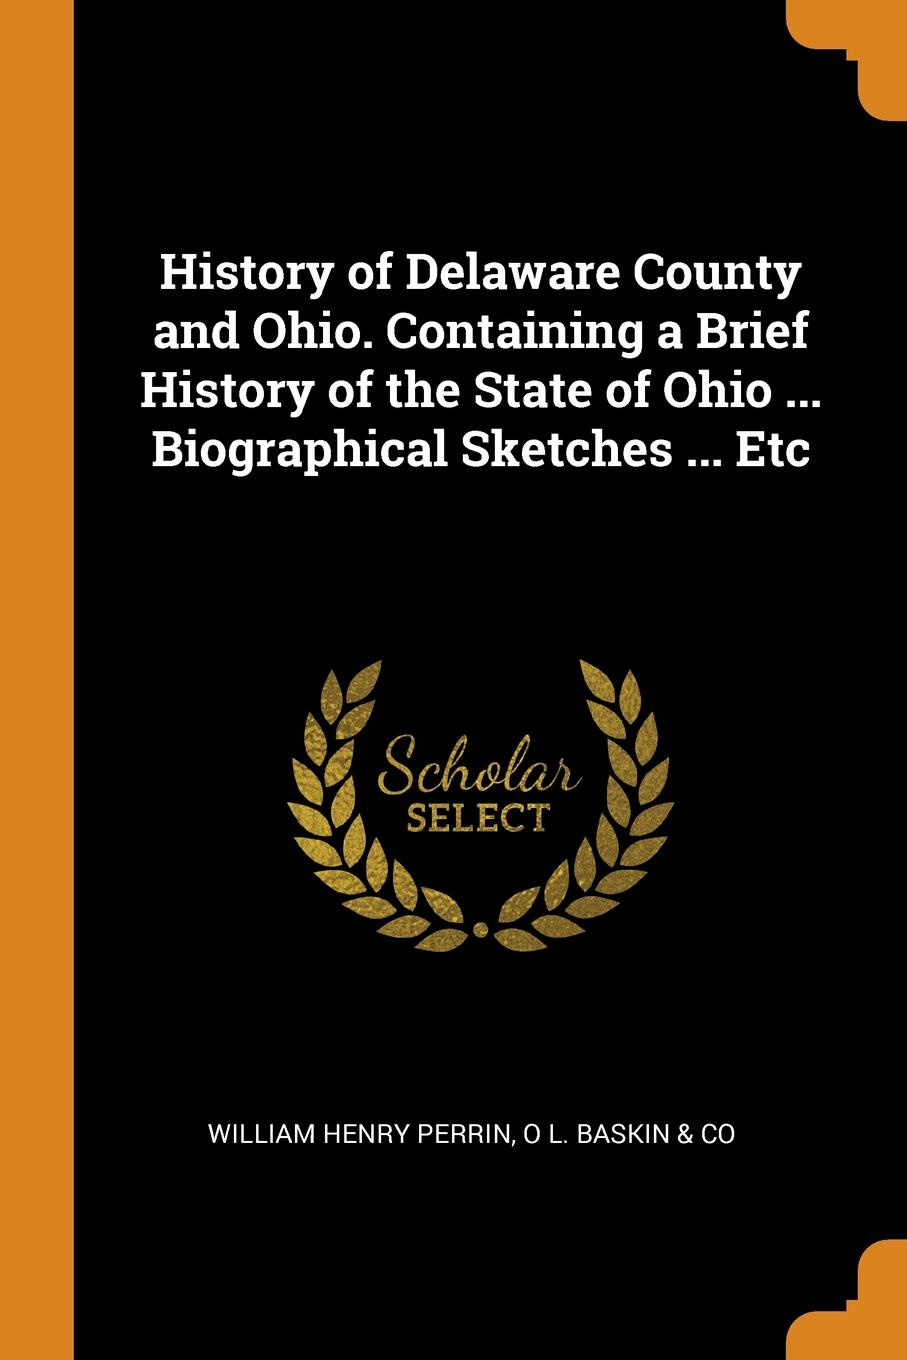 William Henry Perrin, O L. Baskin & Co History of Delaware County and Ohio. Containing a Brief History of the State of Ohio ... Biographical Sketches ... Etc